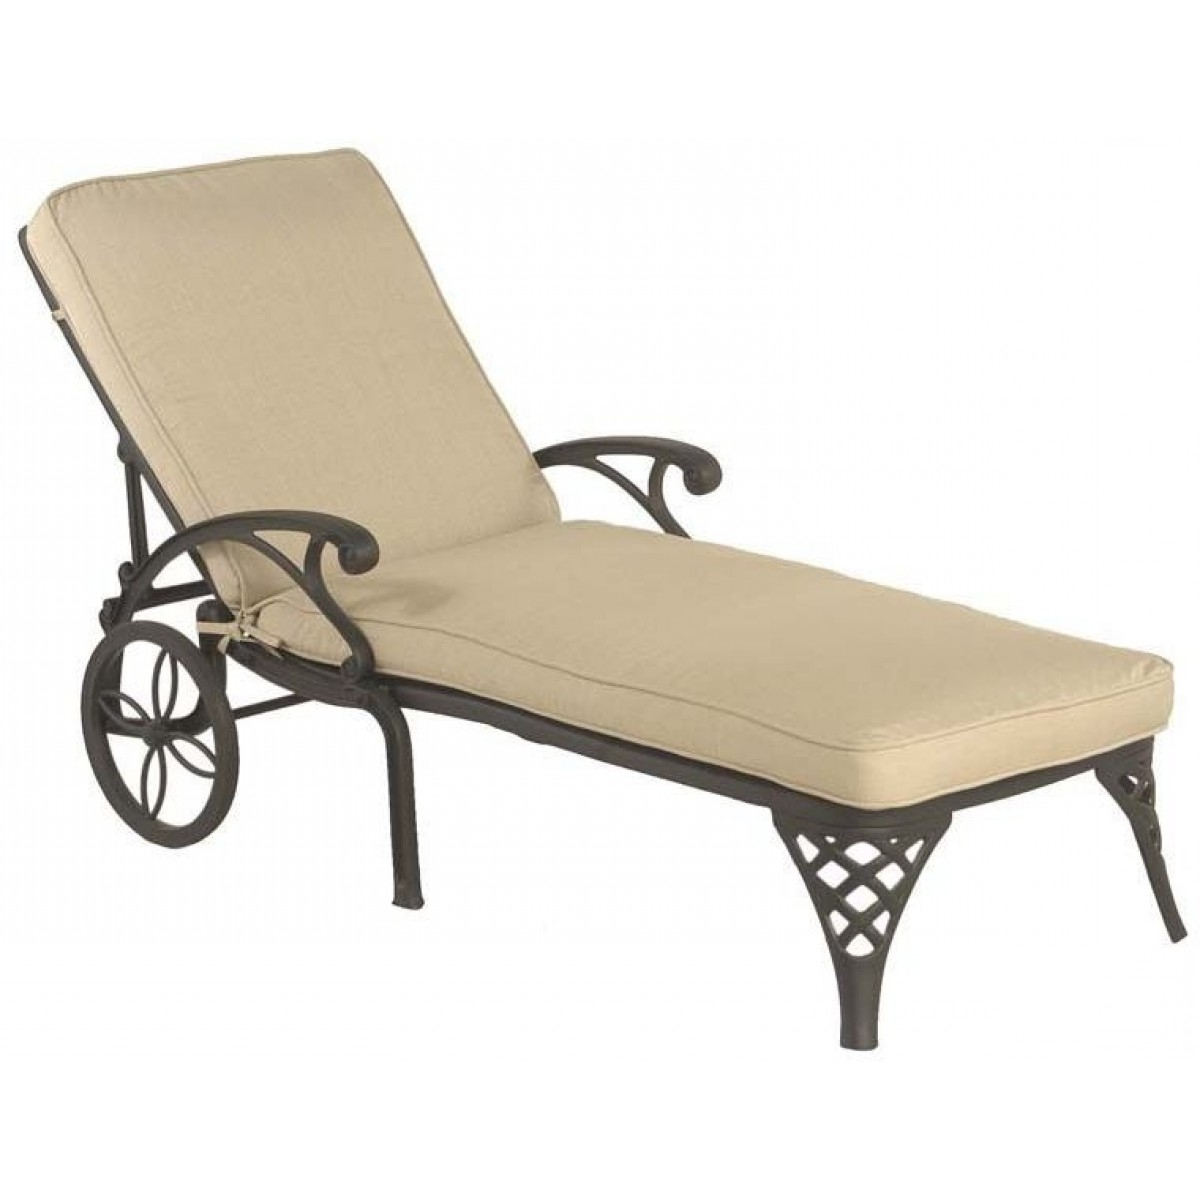 Patiosusa With Regard To Preferred Newport Chaise Lounge Chairs (View 5 of 15)